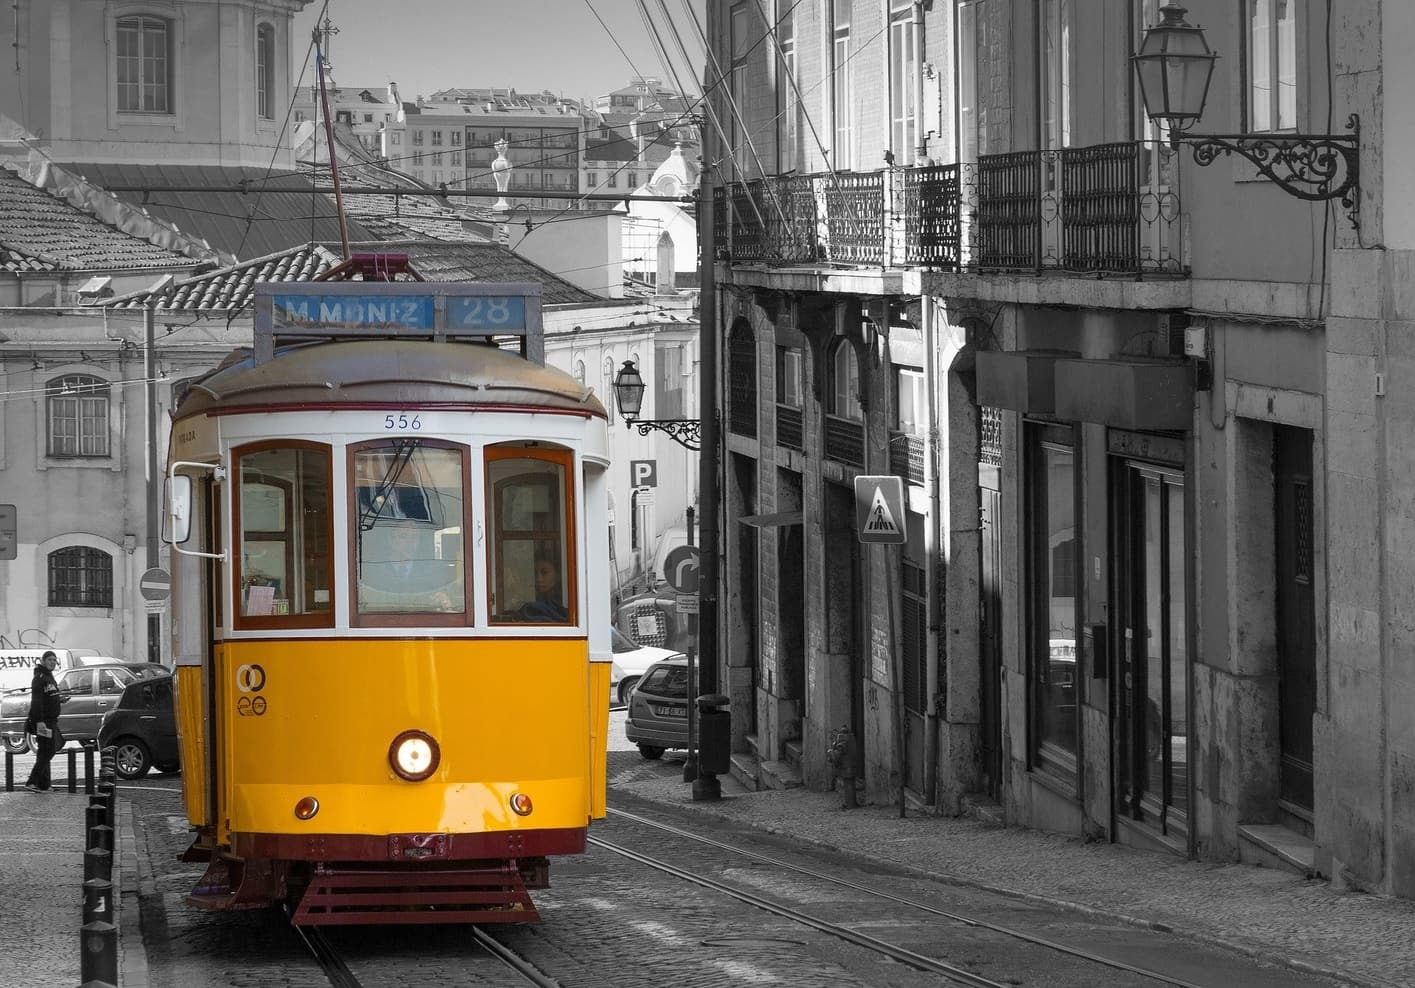 Take the Tram 28, a great activity to do in Lisbon